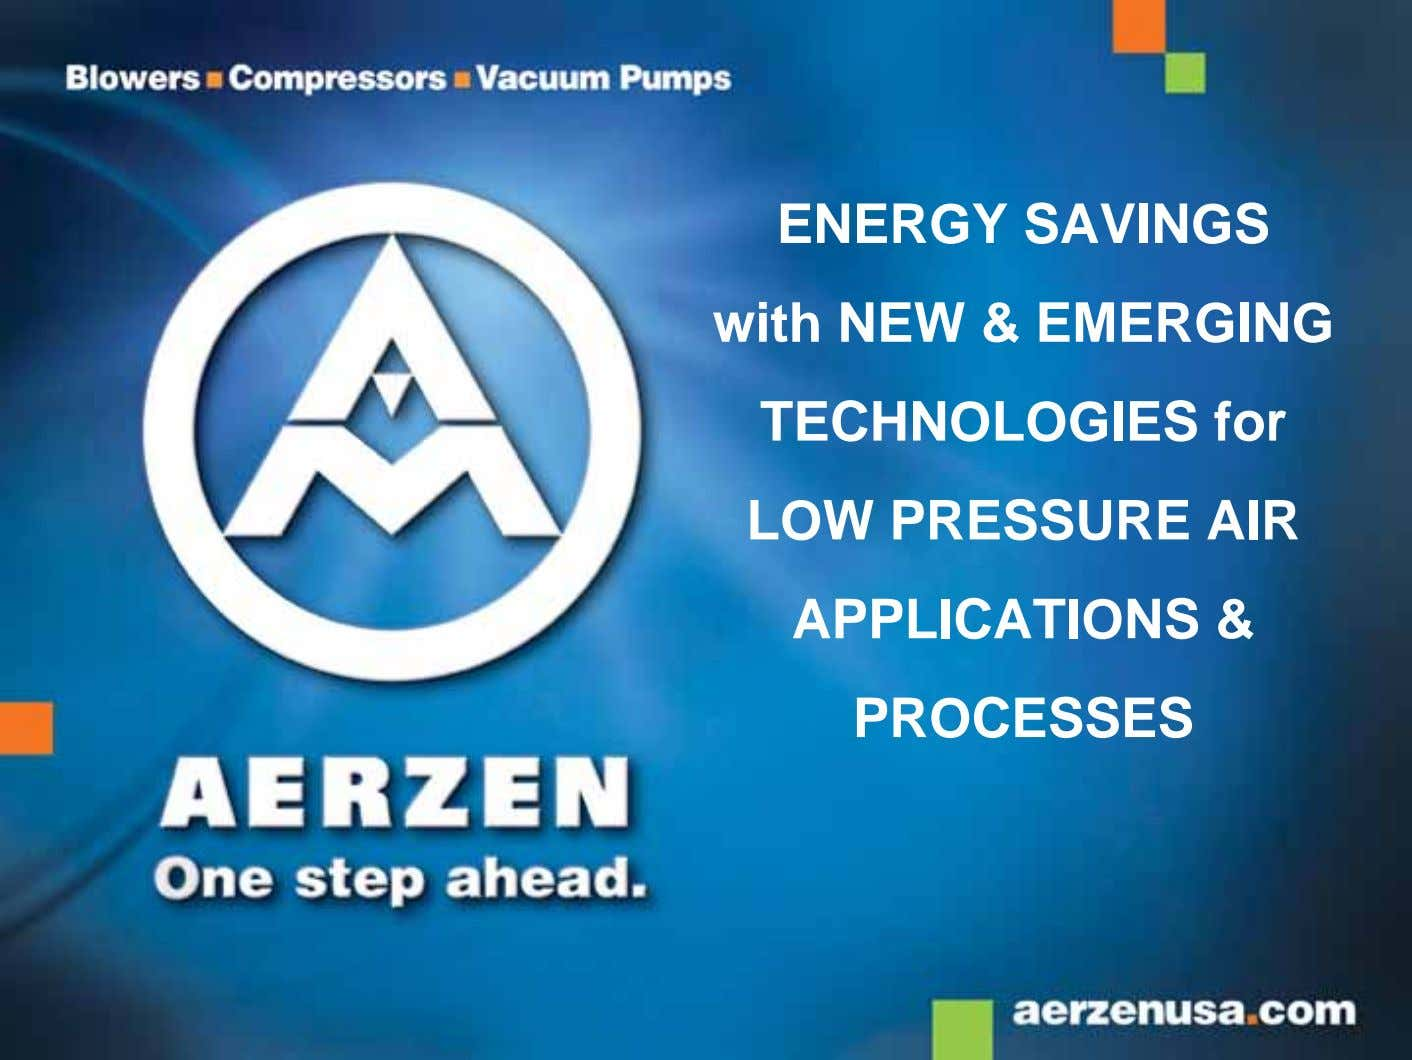 ENERGY SAVINGS with NEW & EMERGING TECHNOLOGIES for LOW PRESSURE AIR APPLICATIONS & PROCESSES